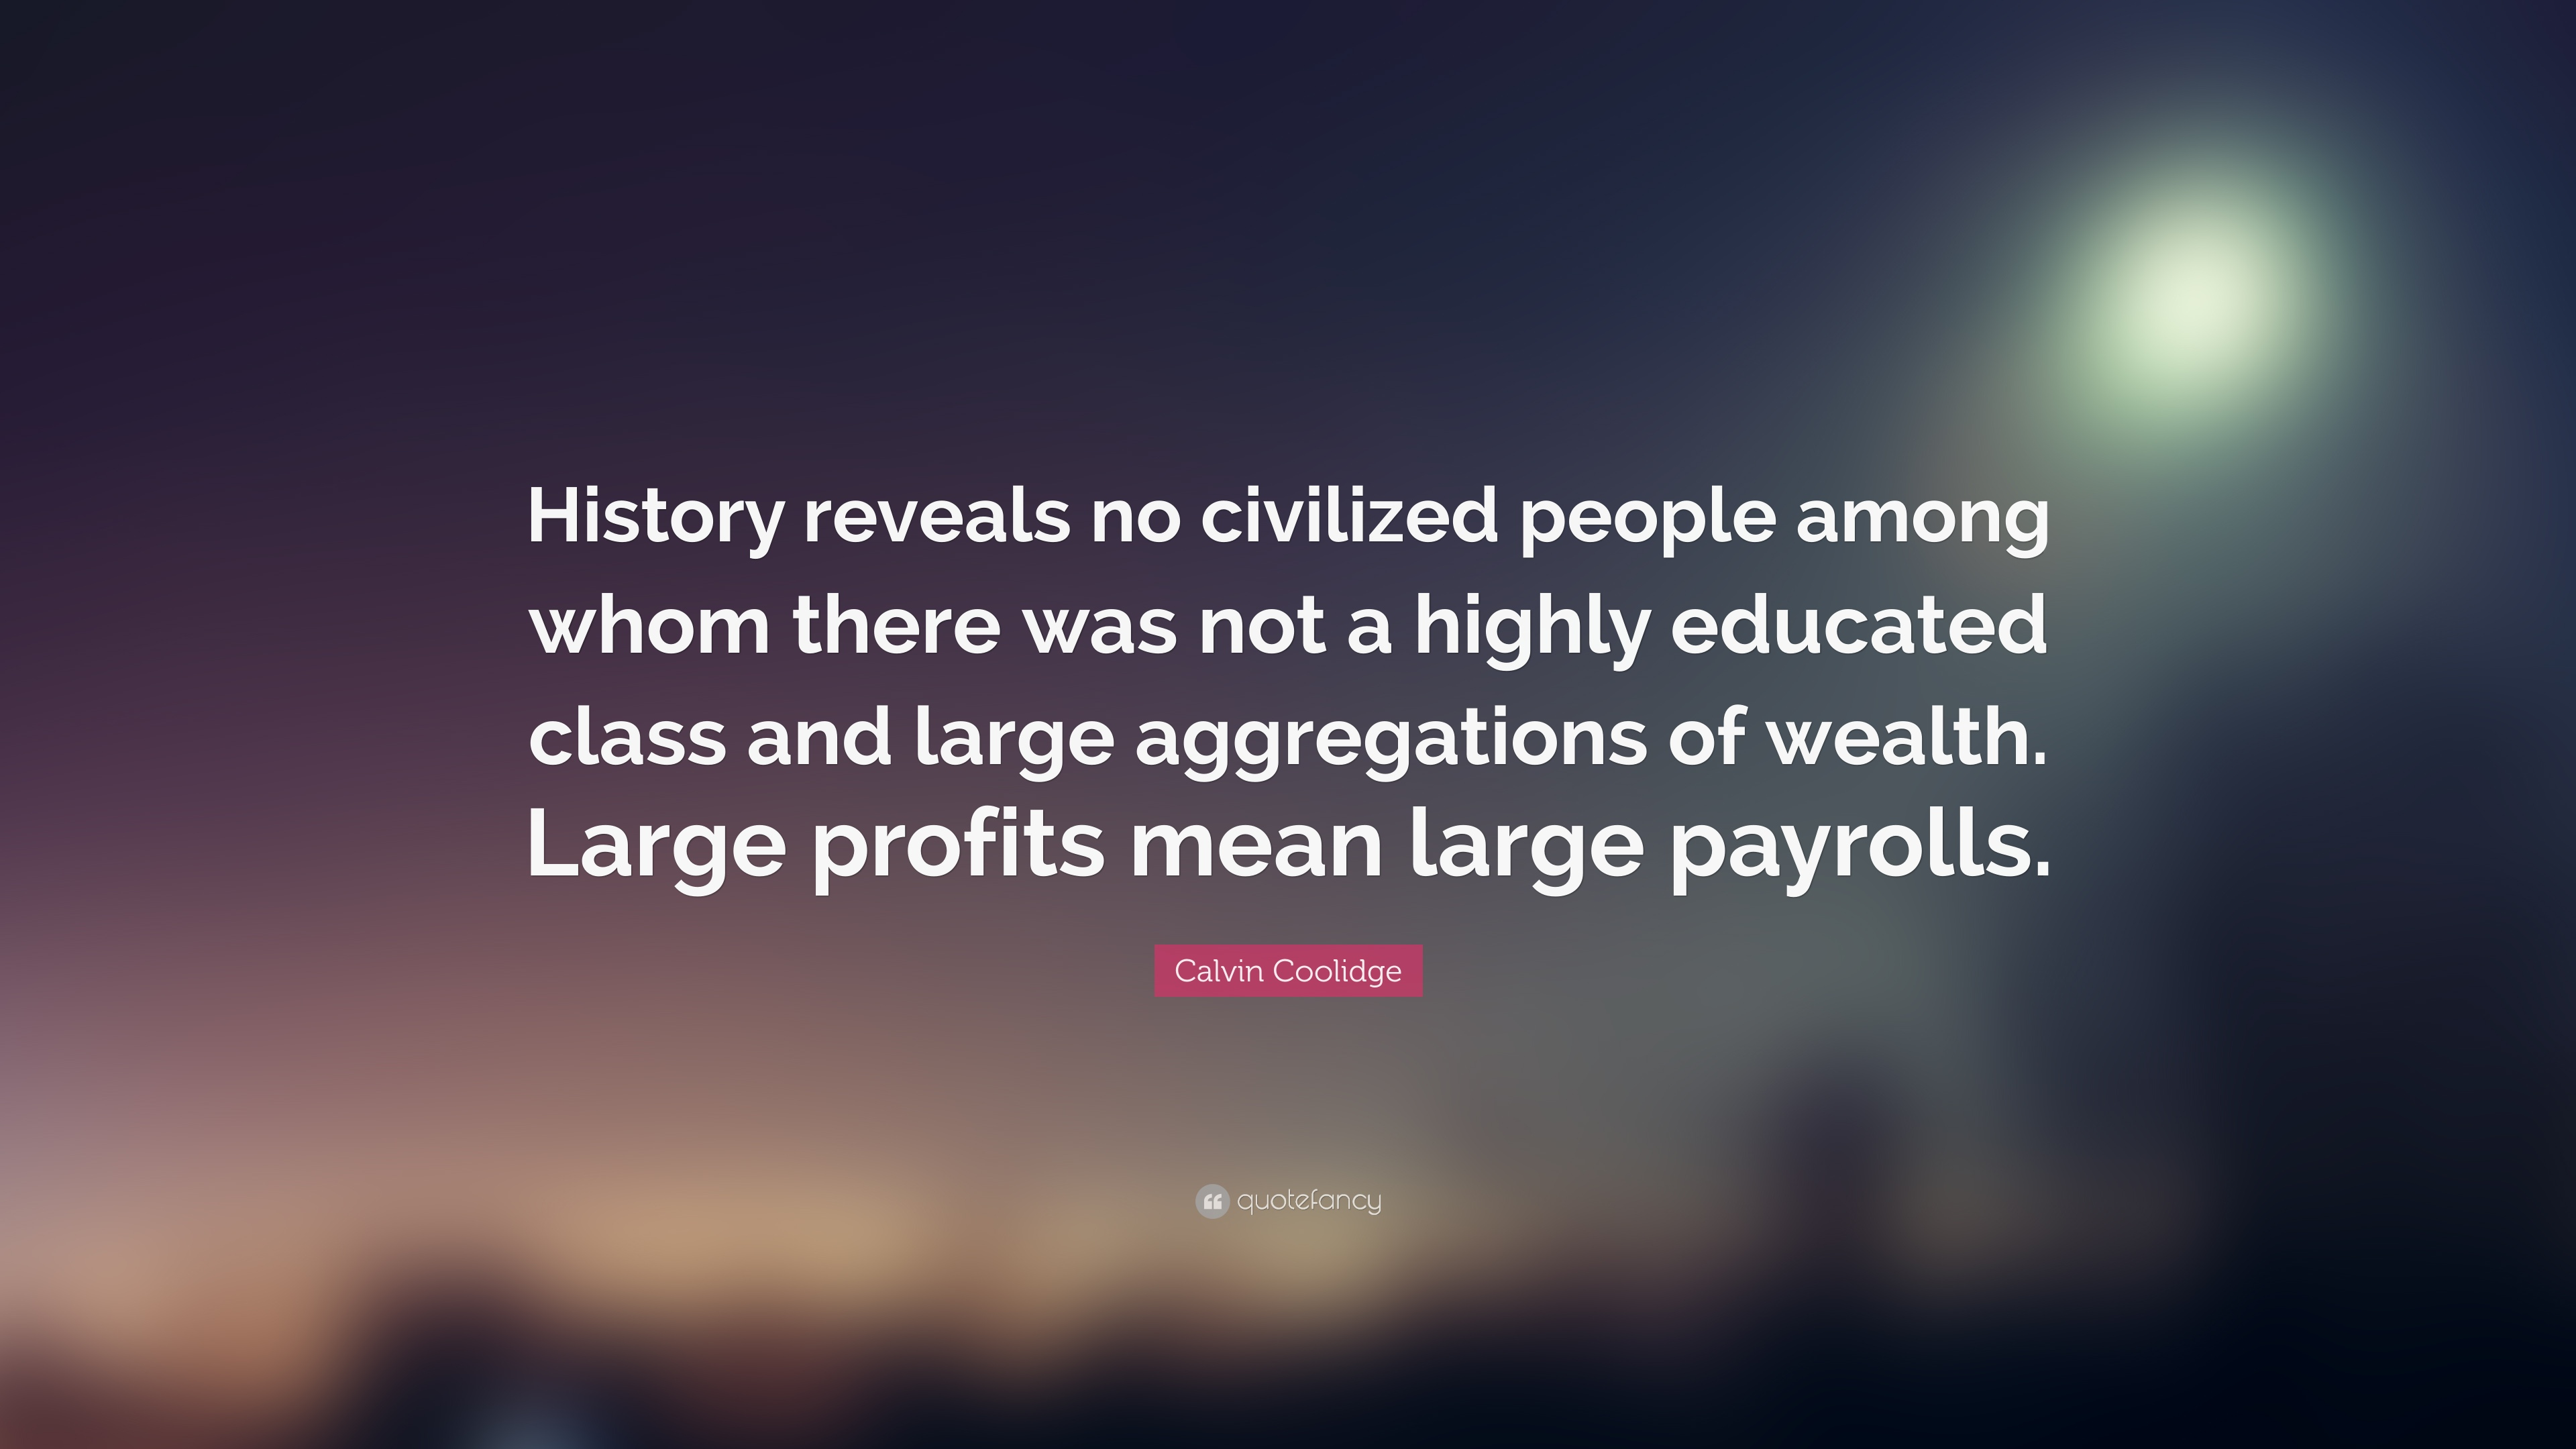 calvin coolidge quote history reveals no civilized people among